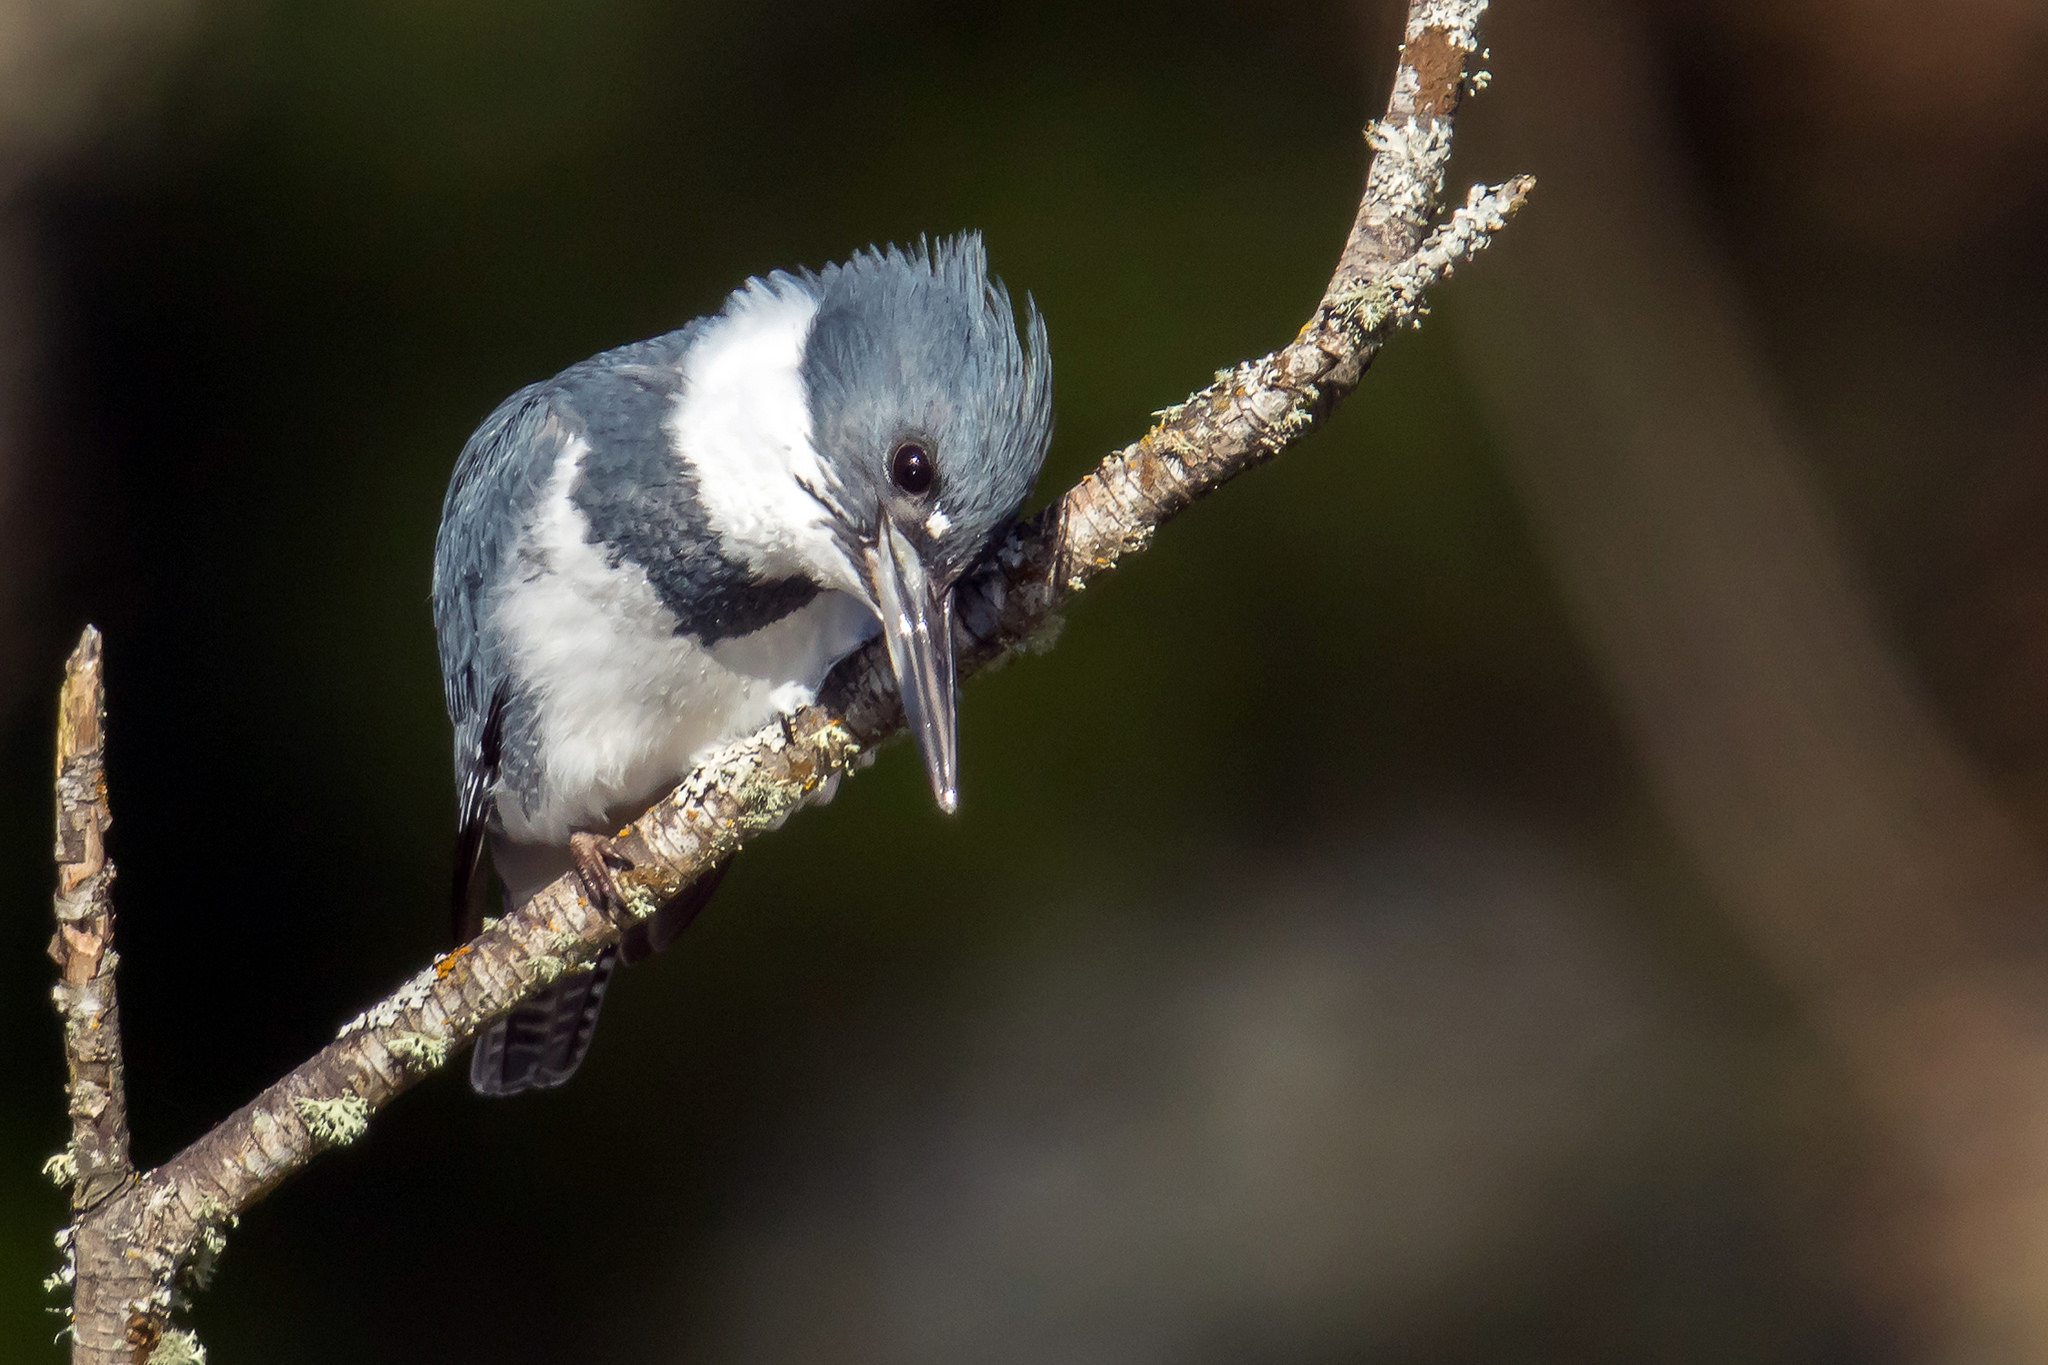 Belted Kingfisher, by Mick Thompson